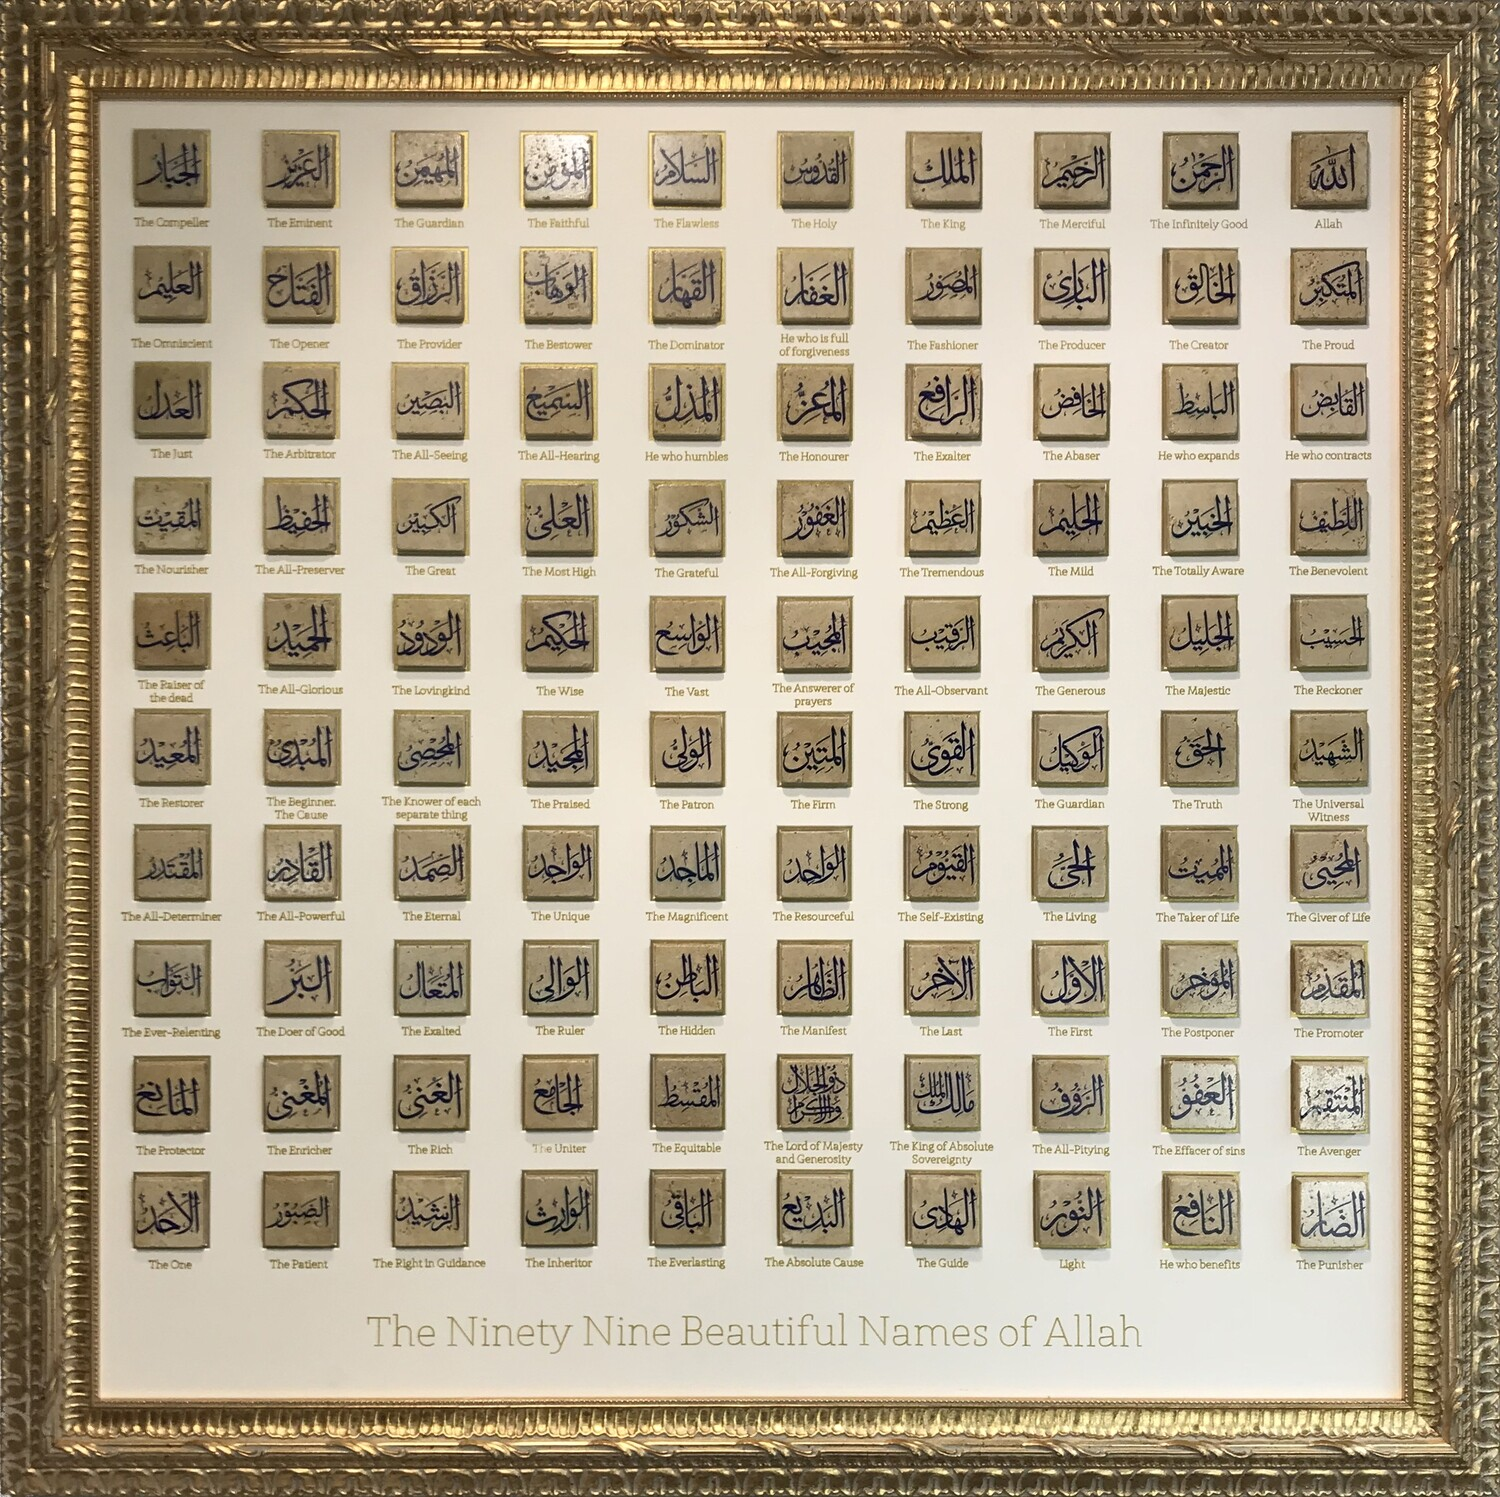 99 Names of Allah - Square Ex-Large Design in Gold Ornate Frame